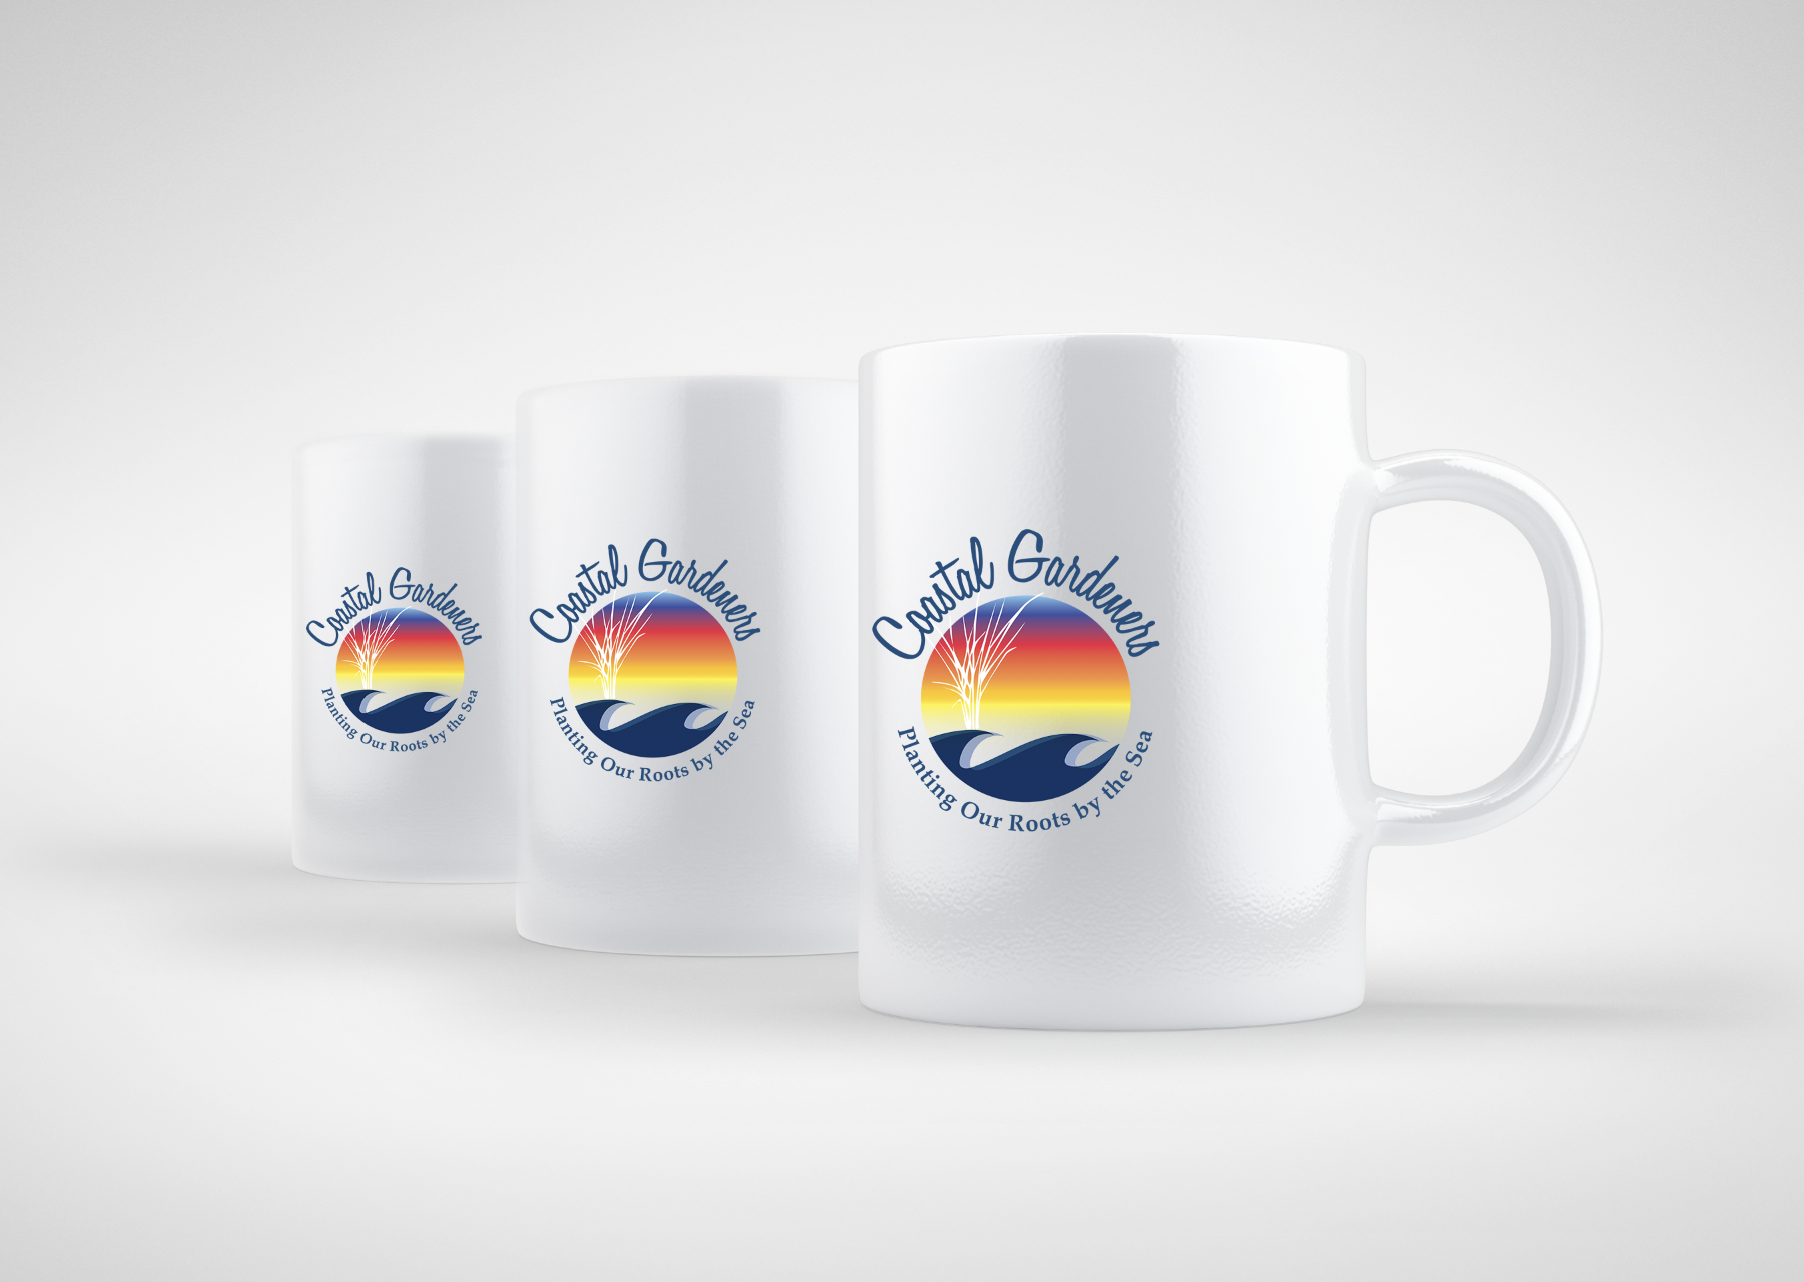 Coastal Gardeners, Delaware, logo and mug design by iKANDE